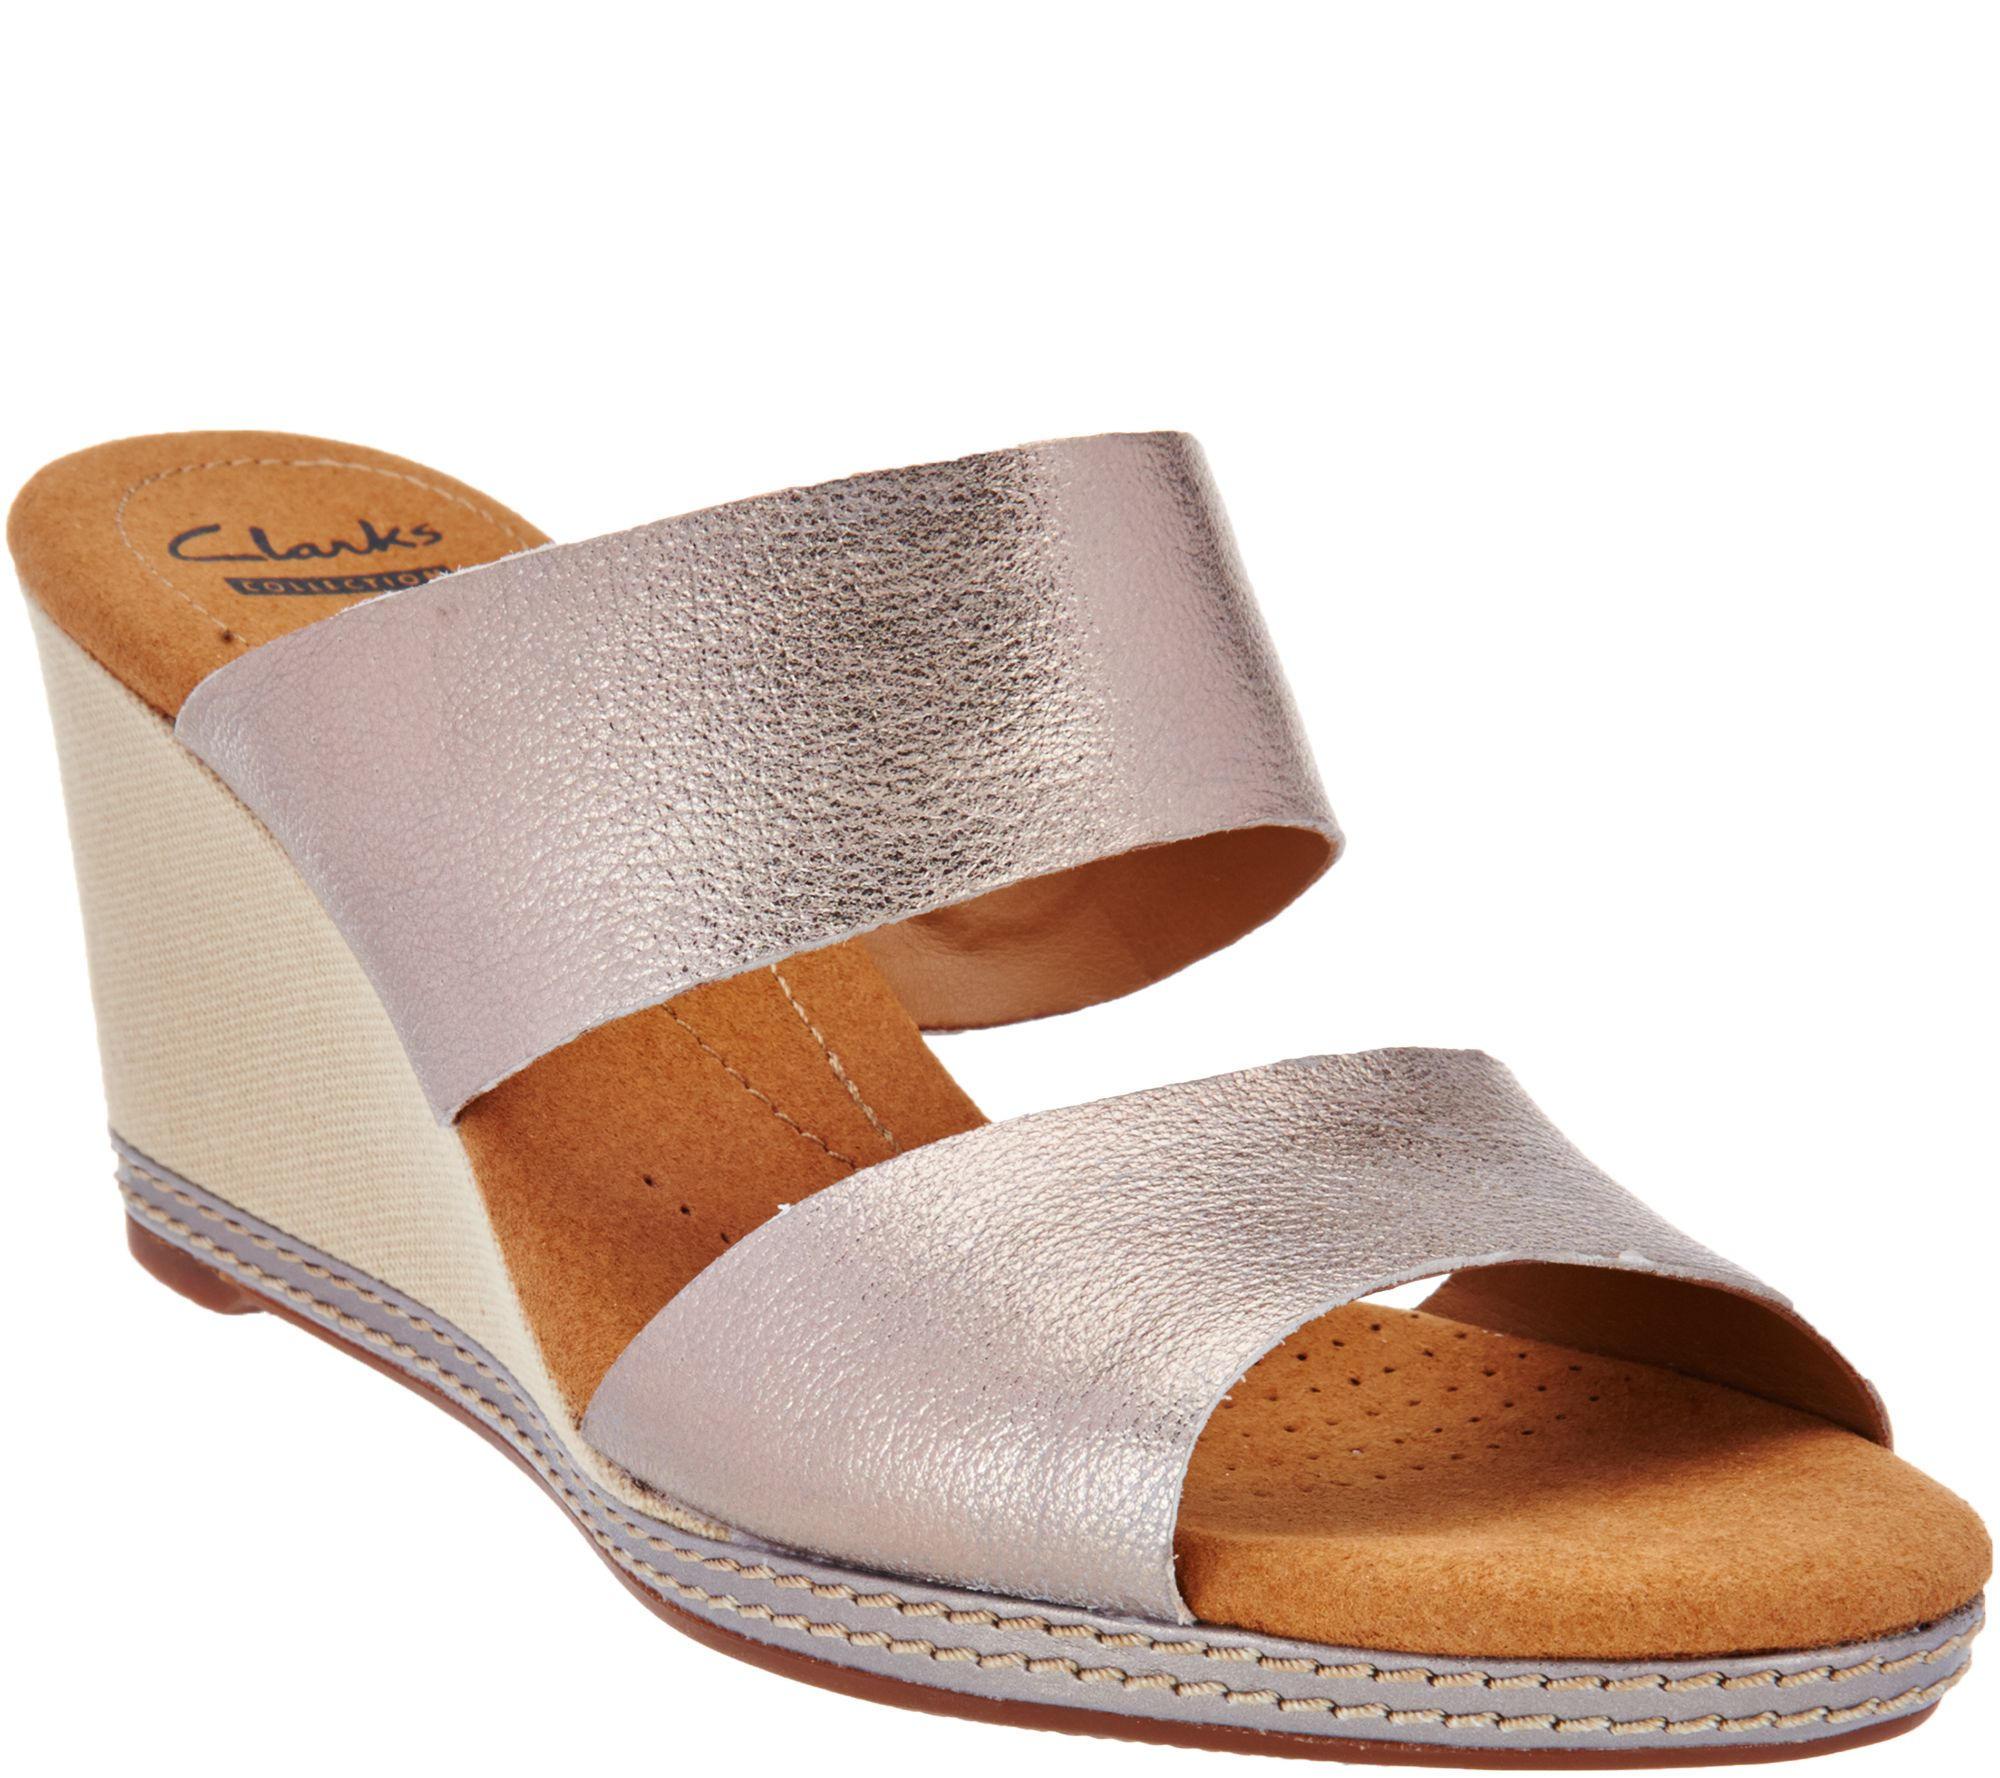 aeb5c7685a2824 Clarks Leather Double Band Slide Wedge Sandals - Helio Lily - Page 1 —  QVC.com